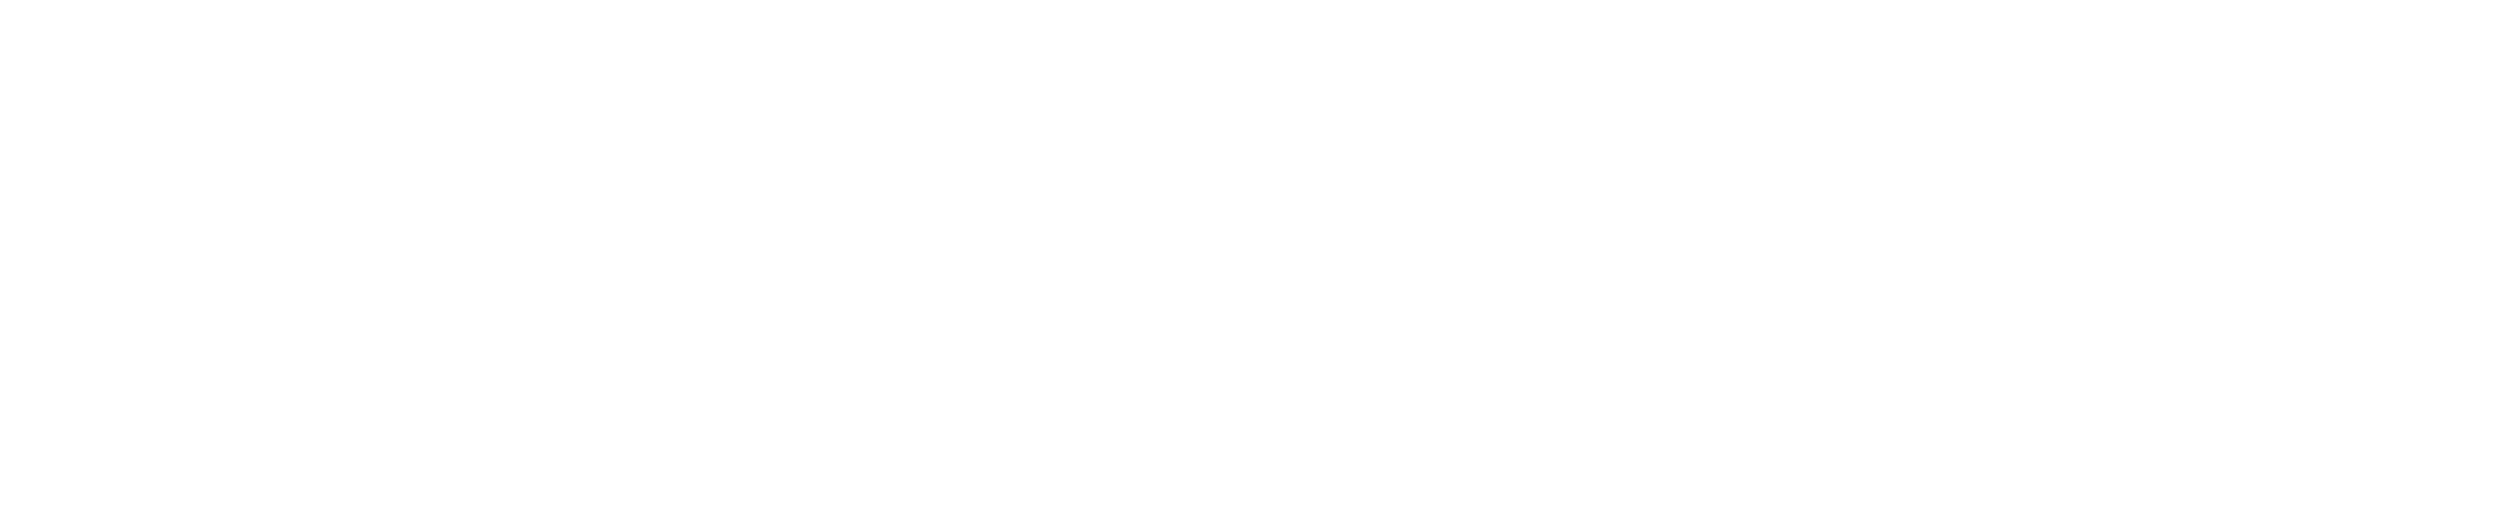 University at Buffalo (SUNY) logo